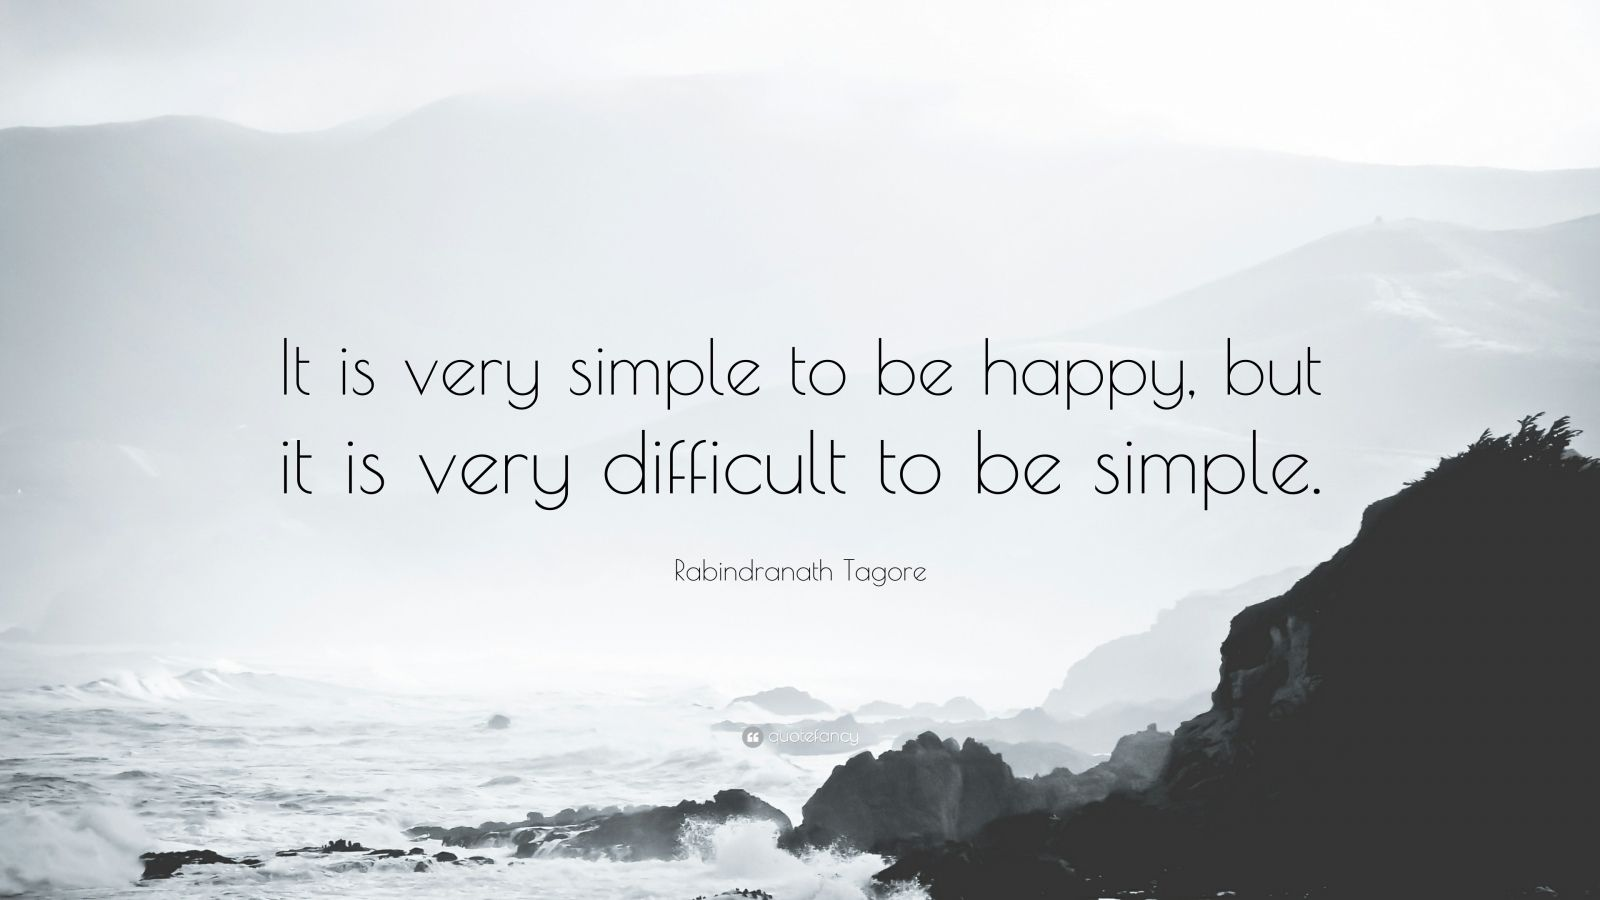 """Rabindranath Tagore Quote: """"It is very simple to be happy, but it is very difficult to be simple."""""""